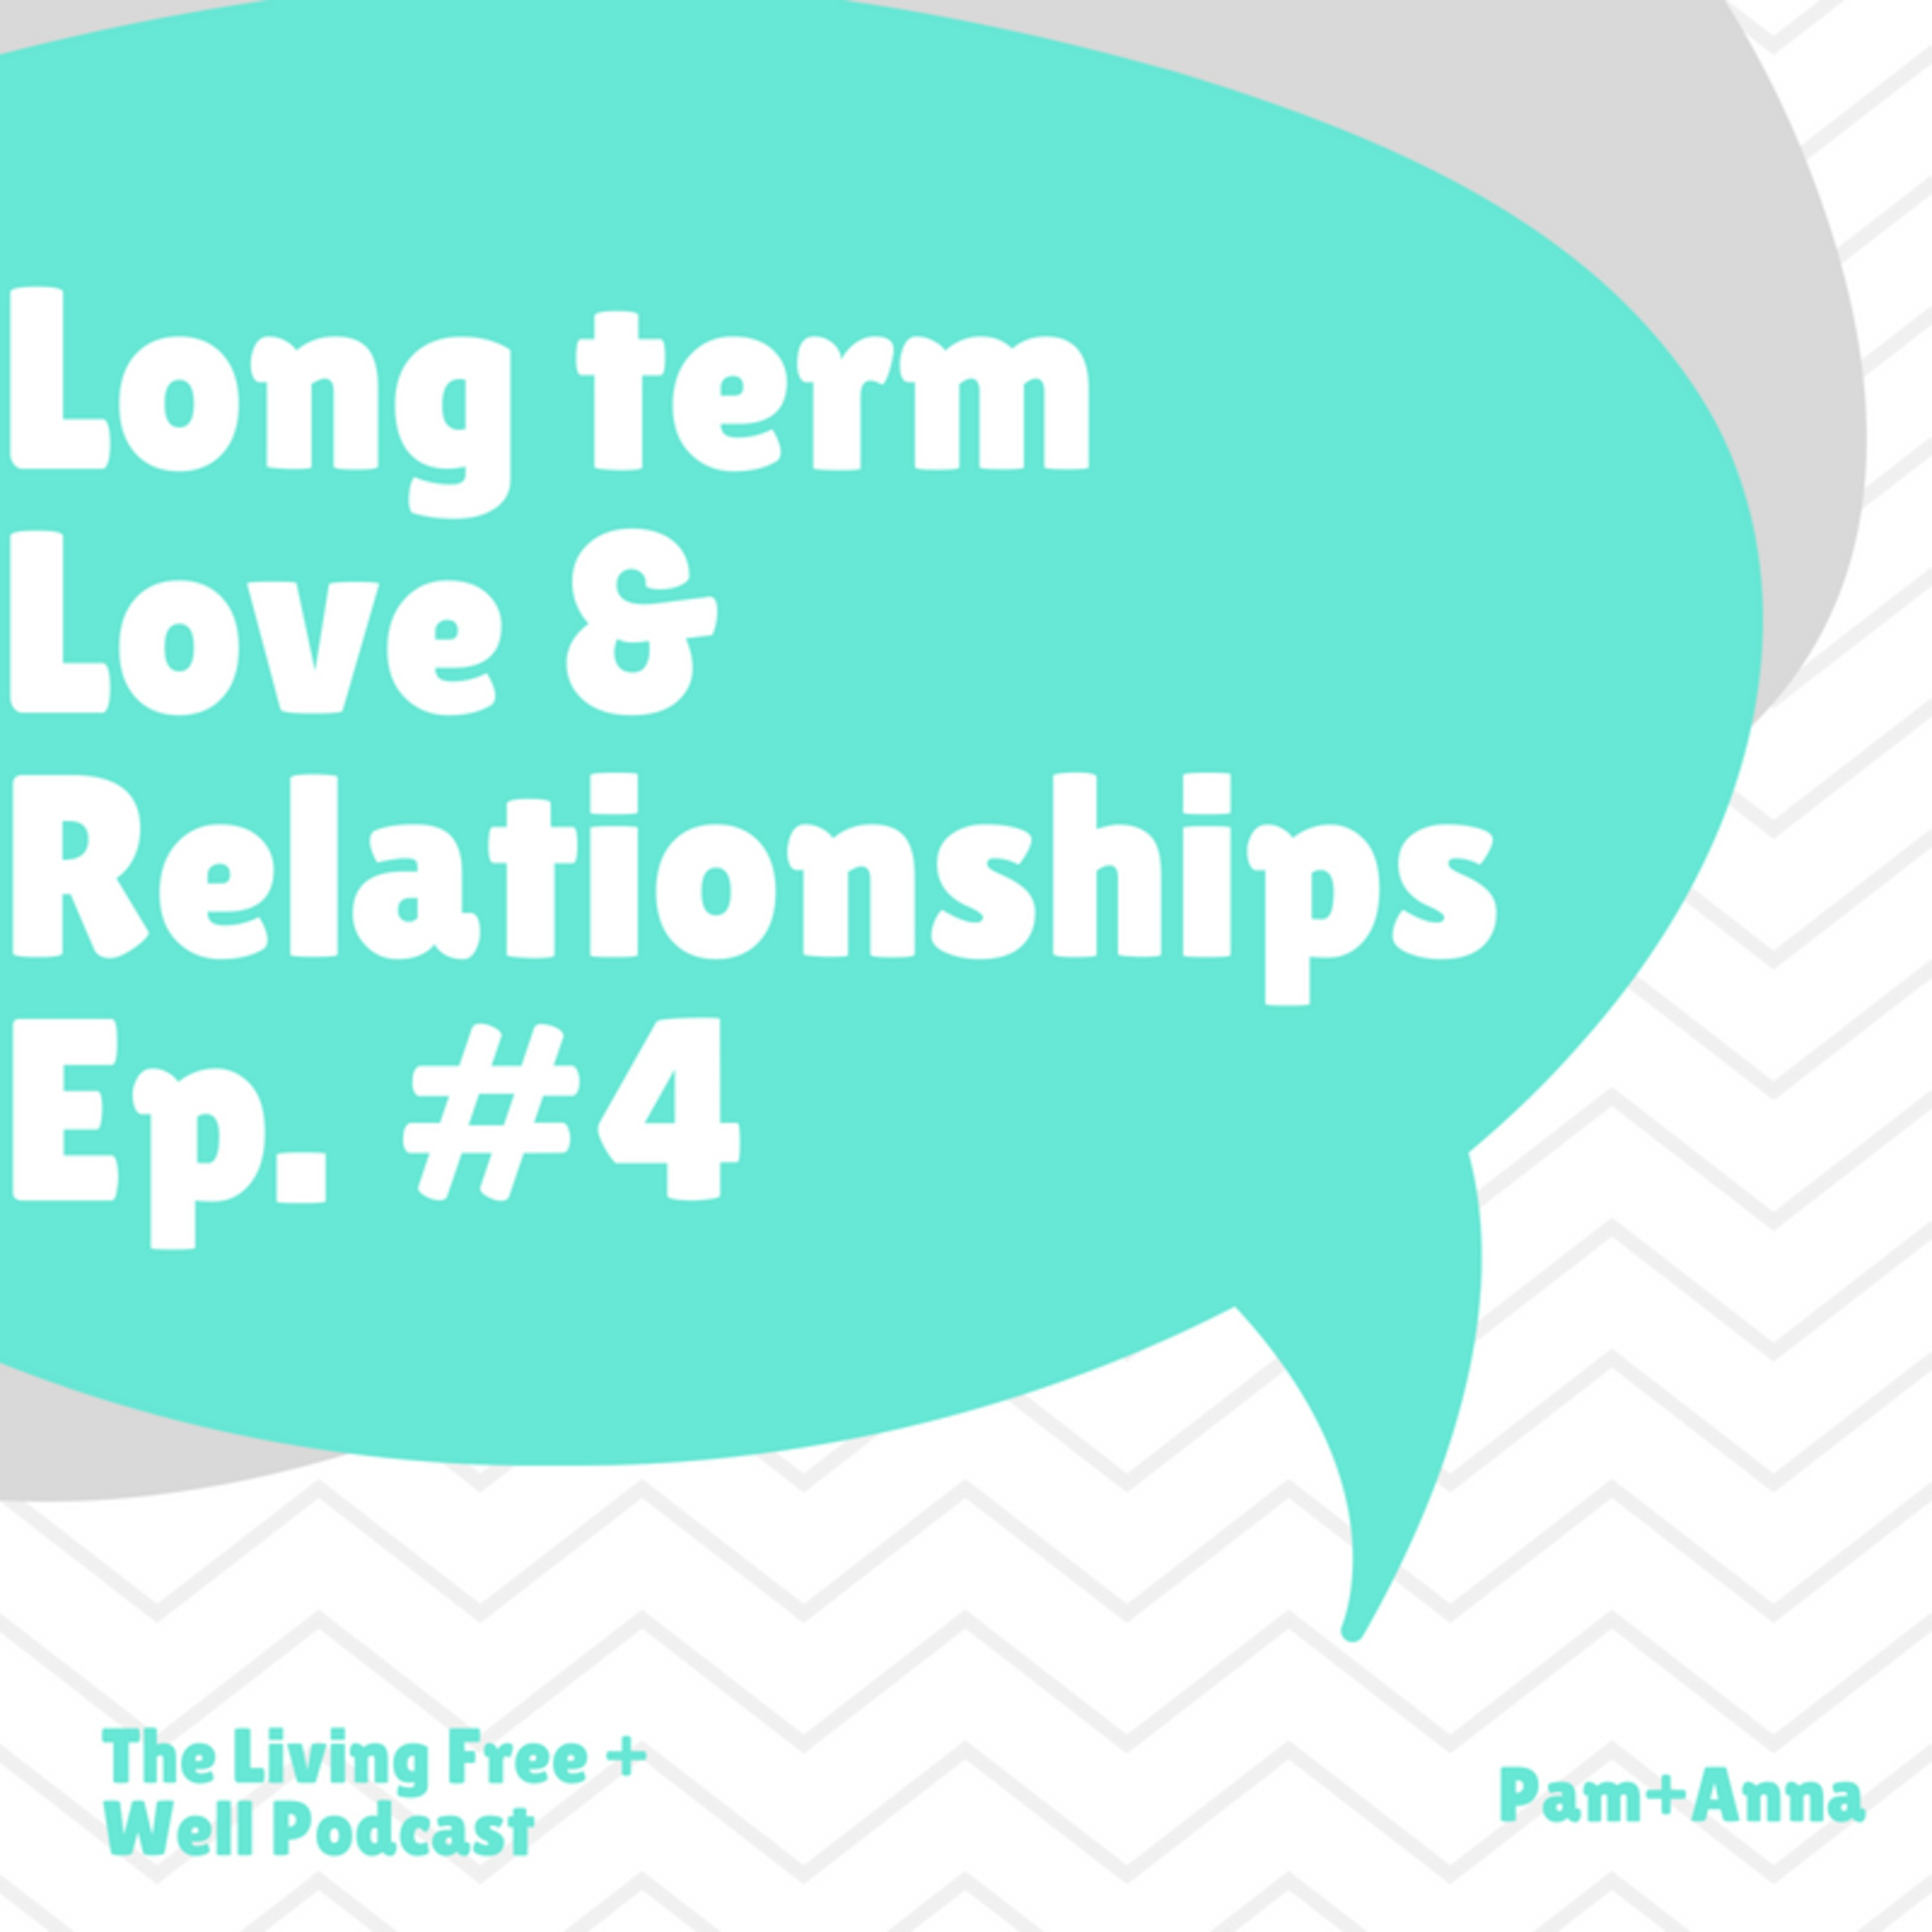 Love + Our Relationships - Episode #4